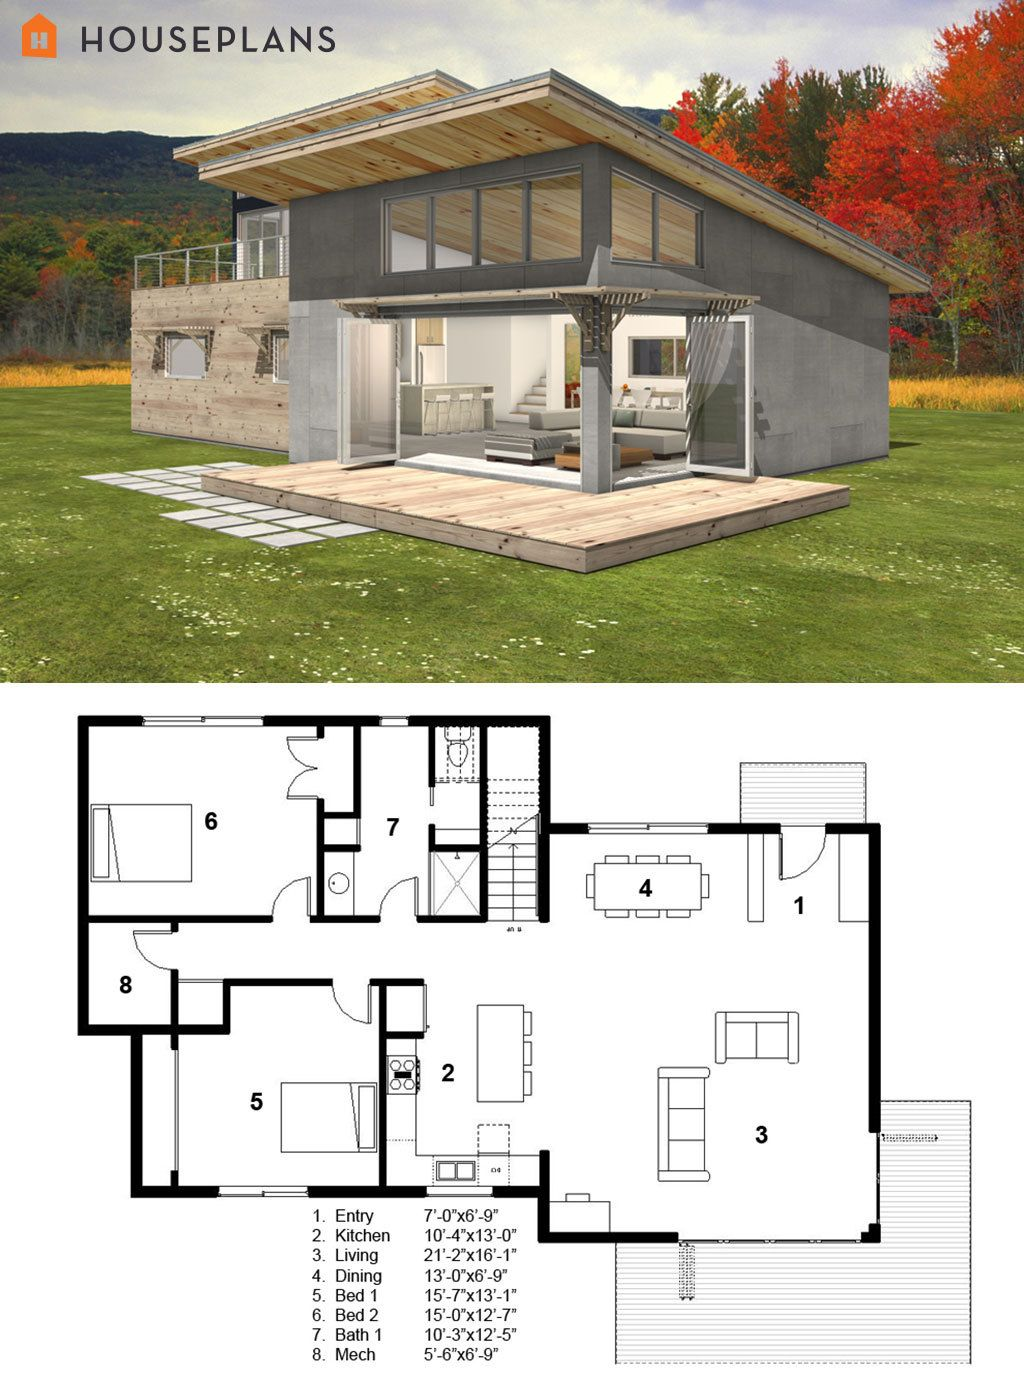 Small modern cabin house plan by freegreen energy for Small modern home plans